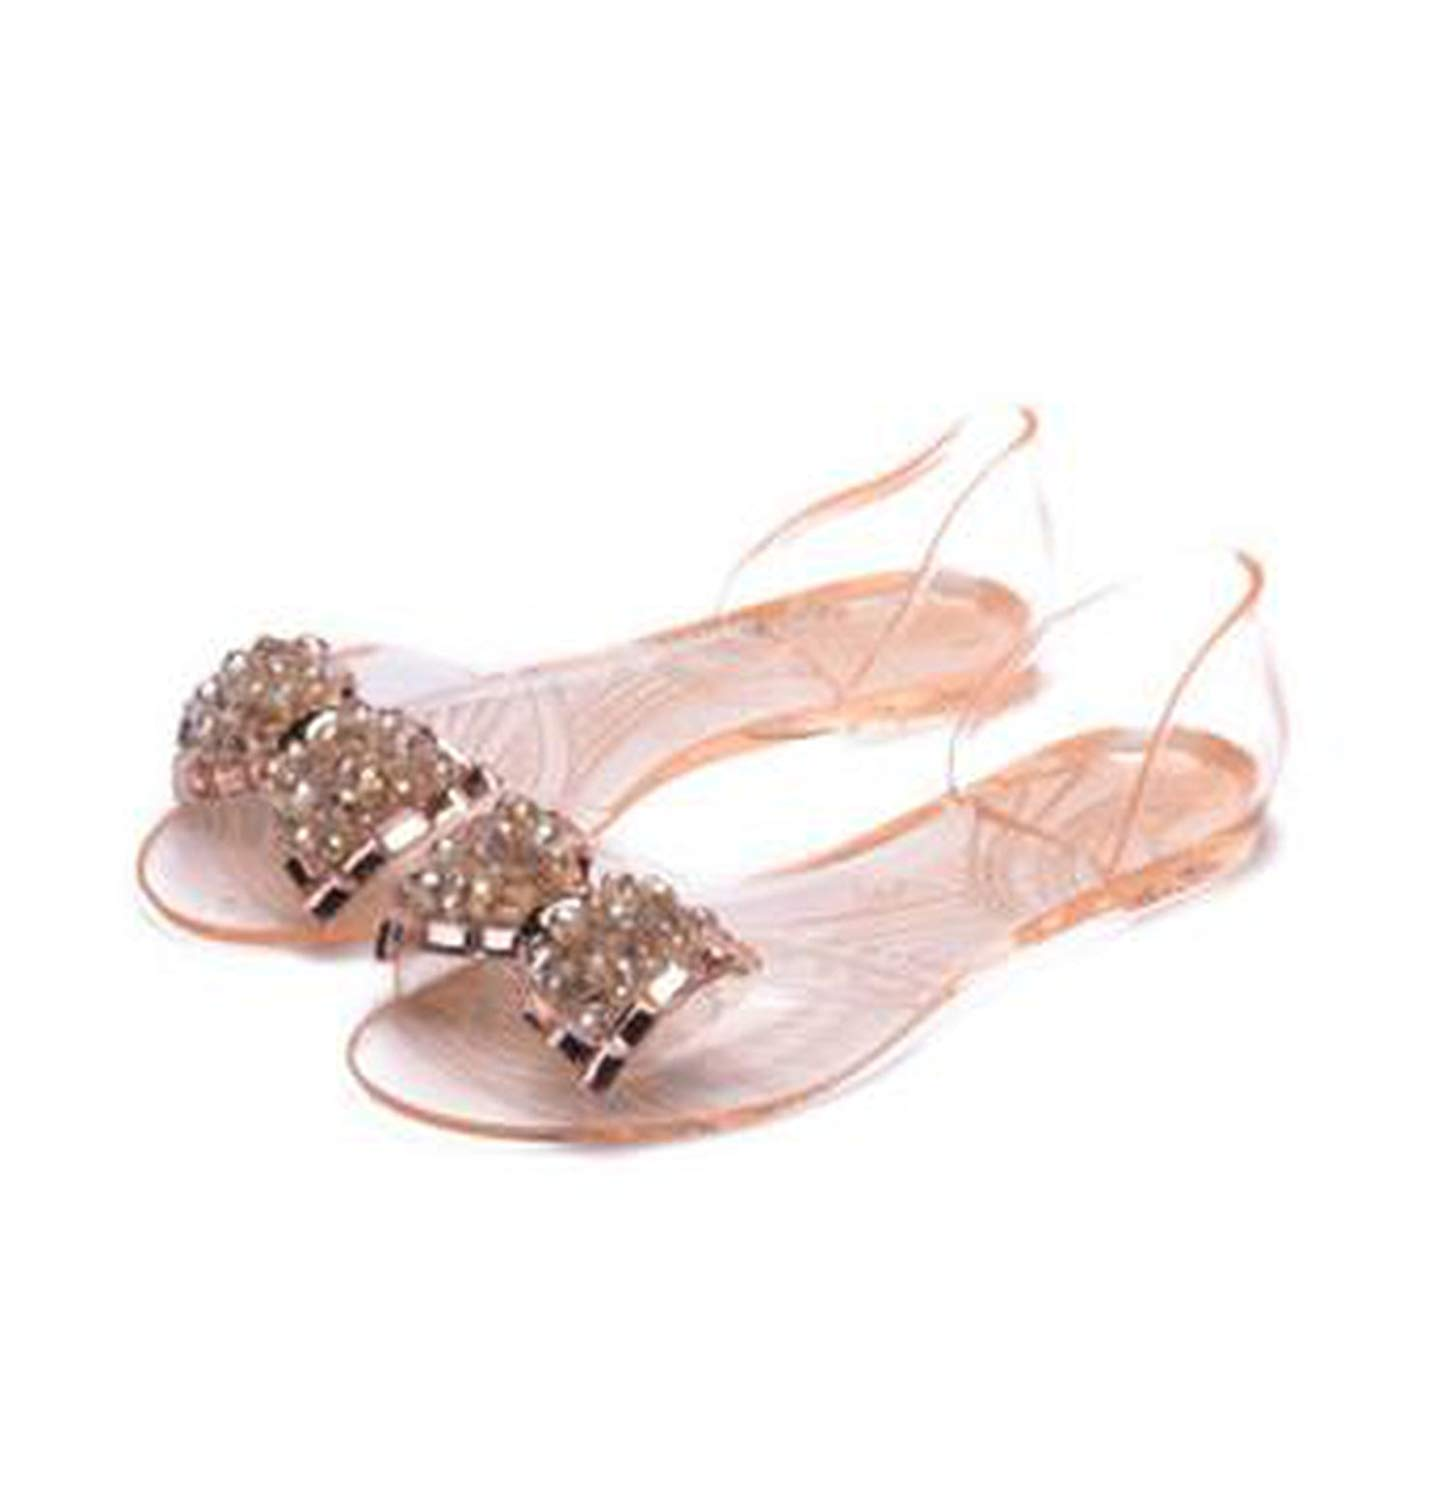 692d0f400db0 Get Quotations · Romantic moments Women Sandals PVC Summer Transparent  Arrival Comfortable Bownot Flats Cover Heel Slip On Jelly